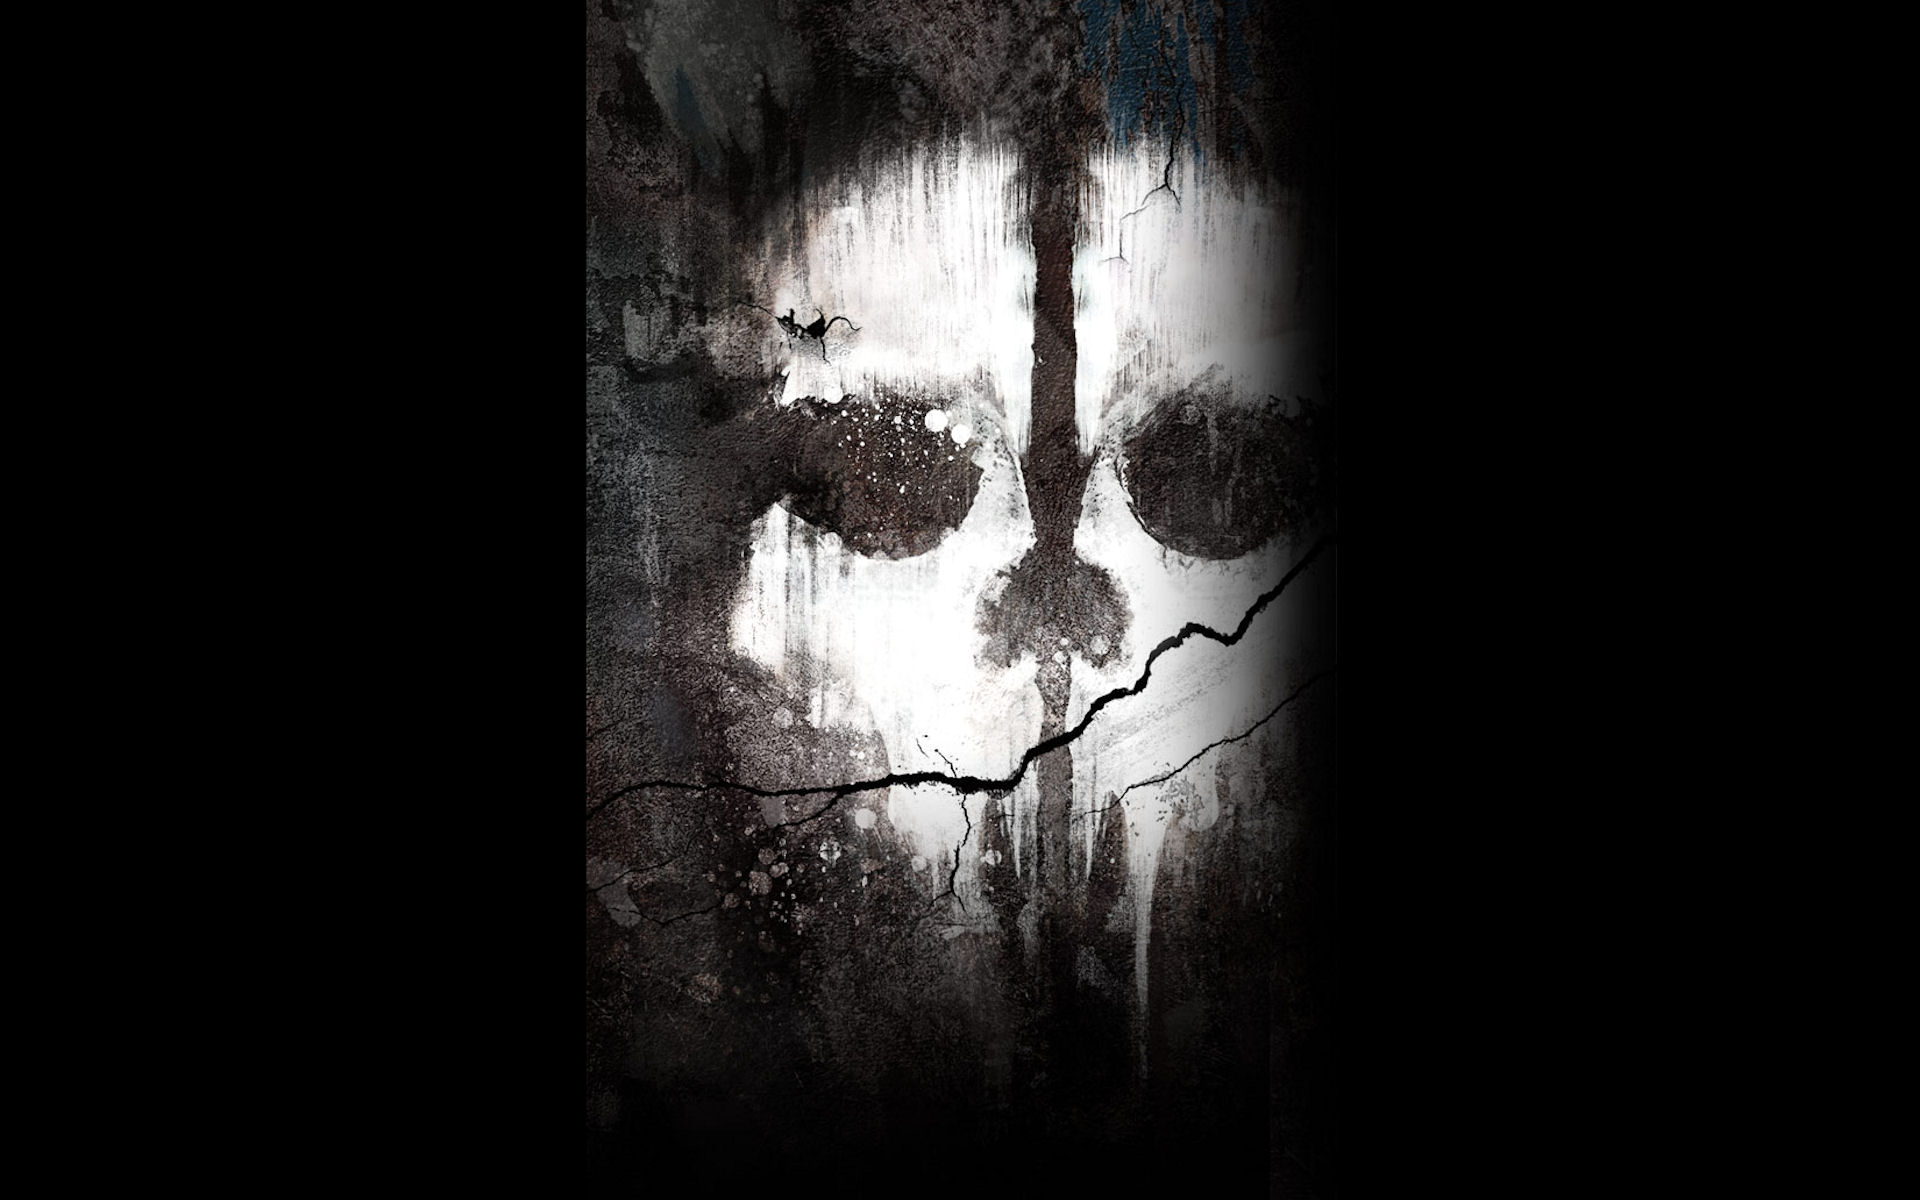 Call of Duty Ghosts Wallpaper (HD)